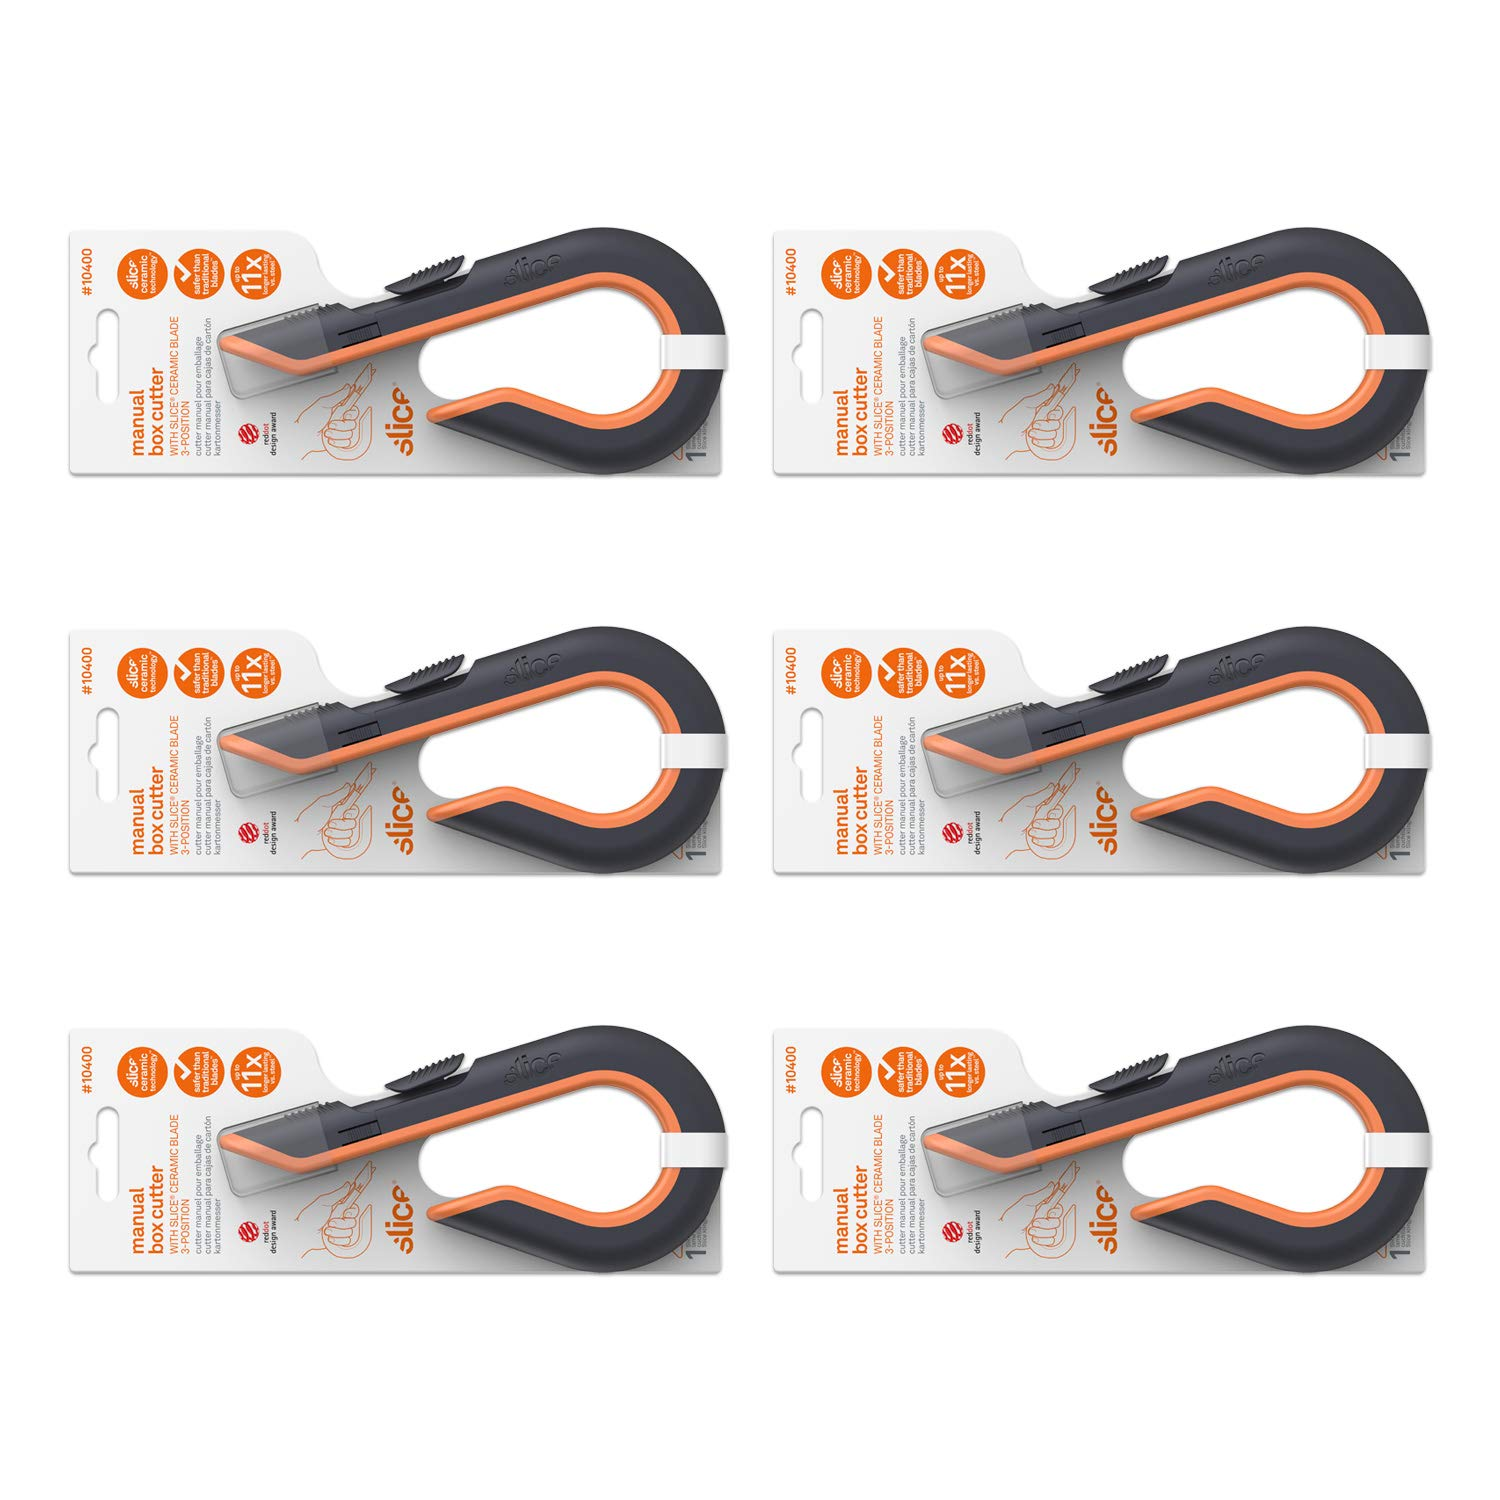 Slice 10400-CS 10400 Box Cutter, Ceramic Safety Blade, 3 Position Manual Button, Stays Sharp up to 10x Longer Than Steel Blades, 6 Pack by Slice